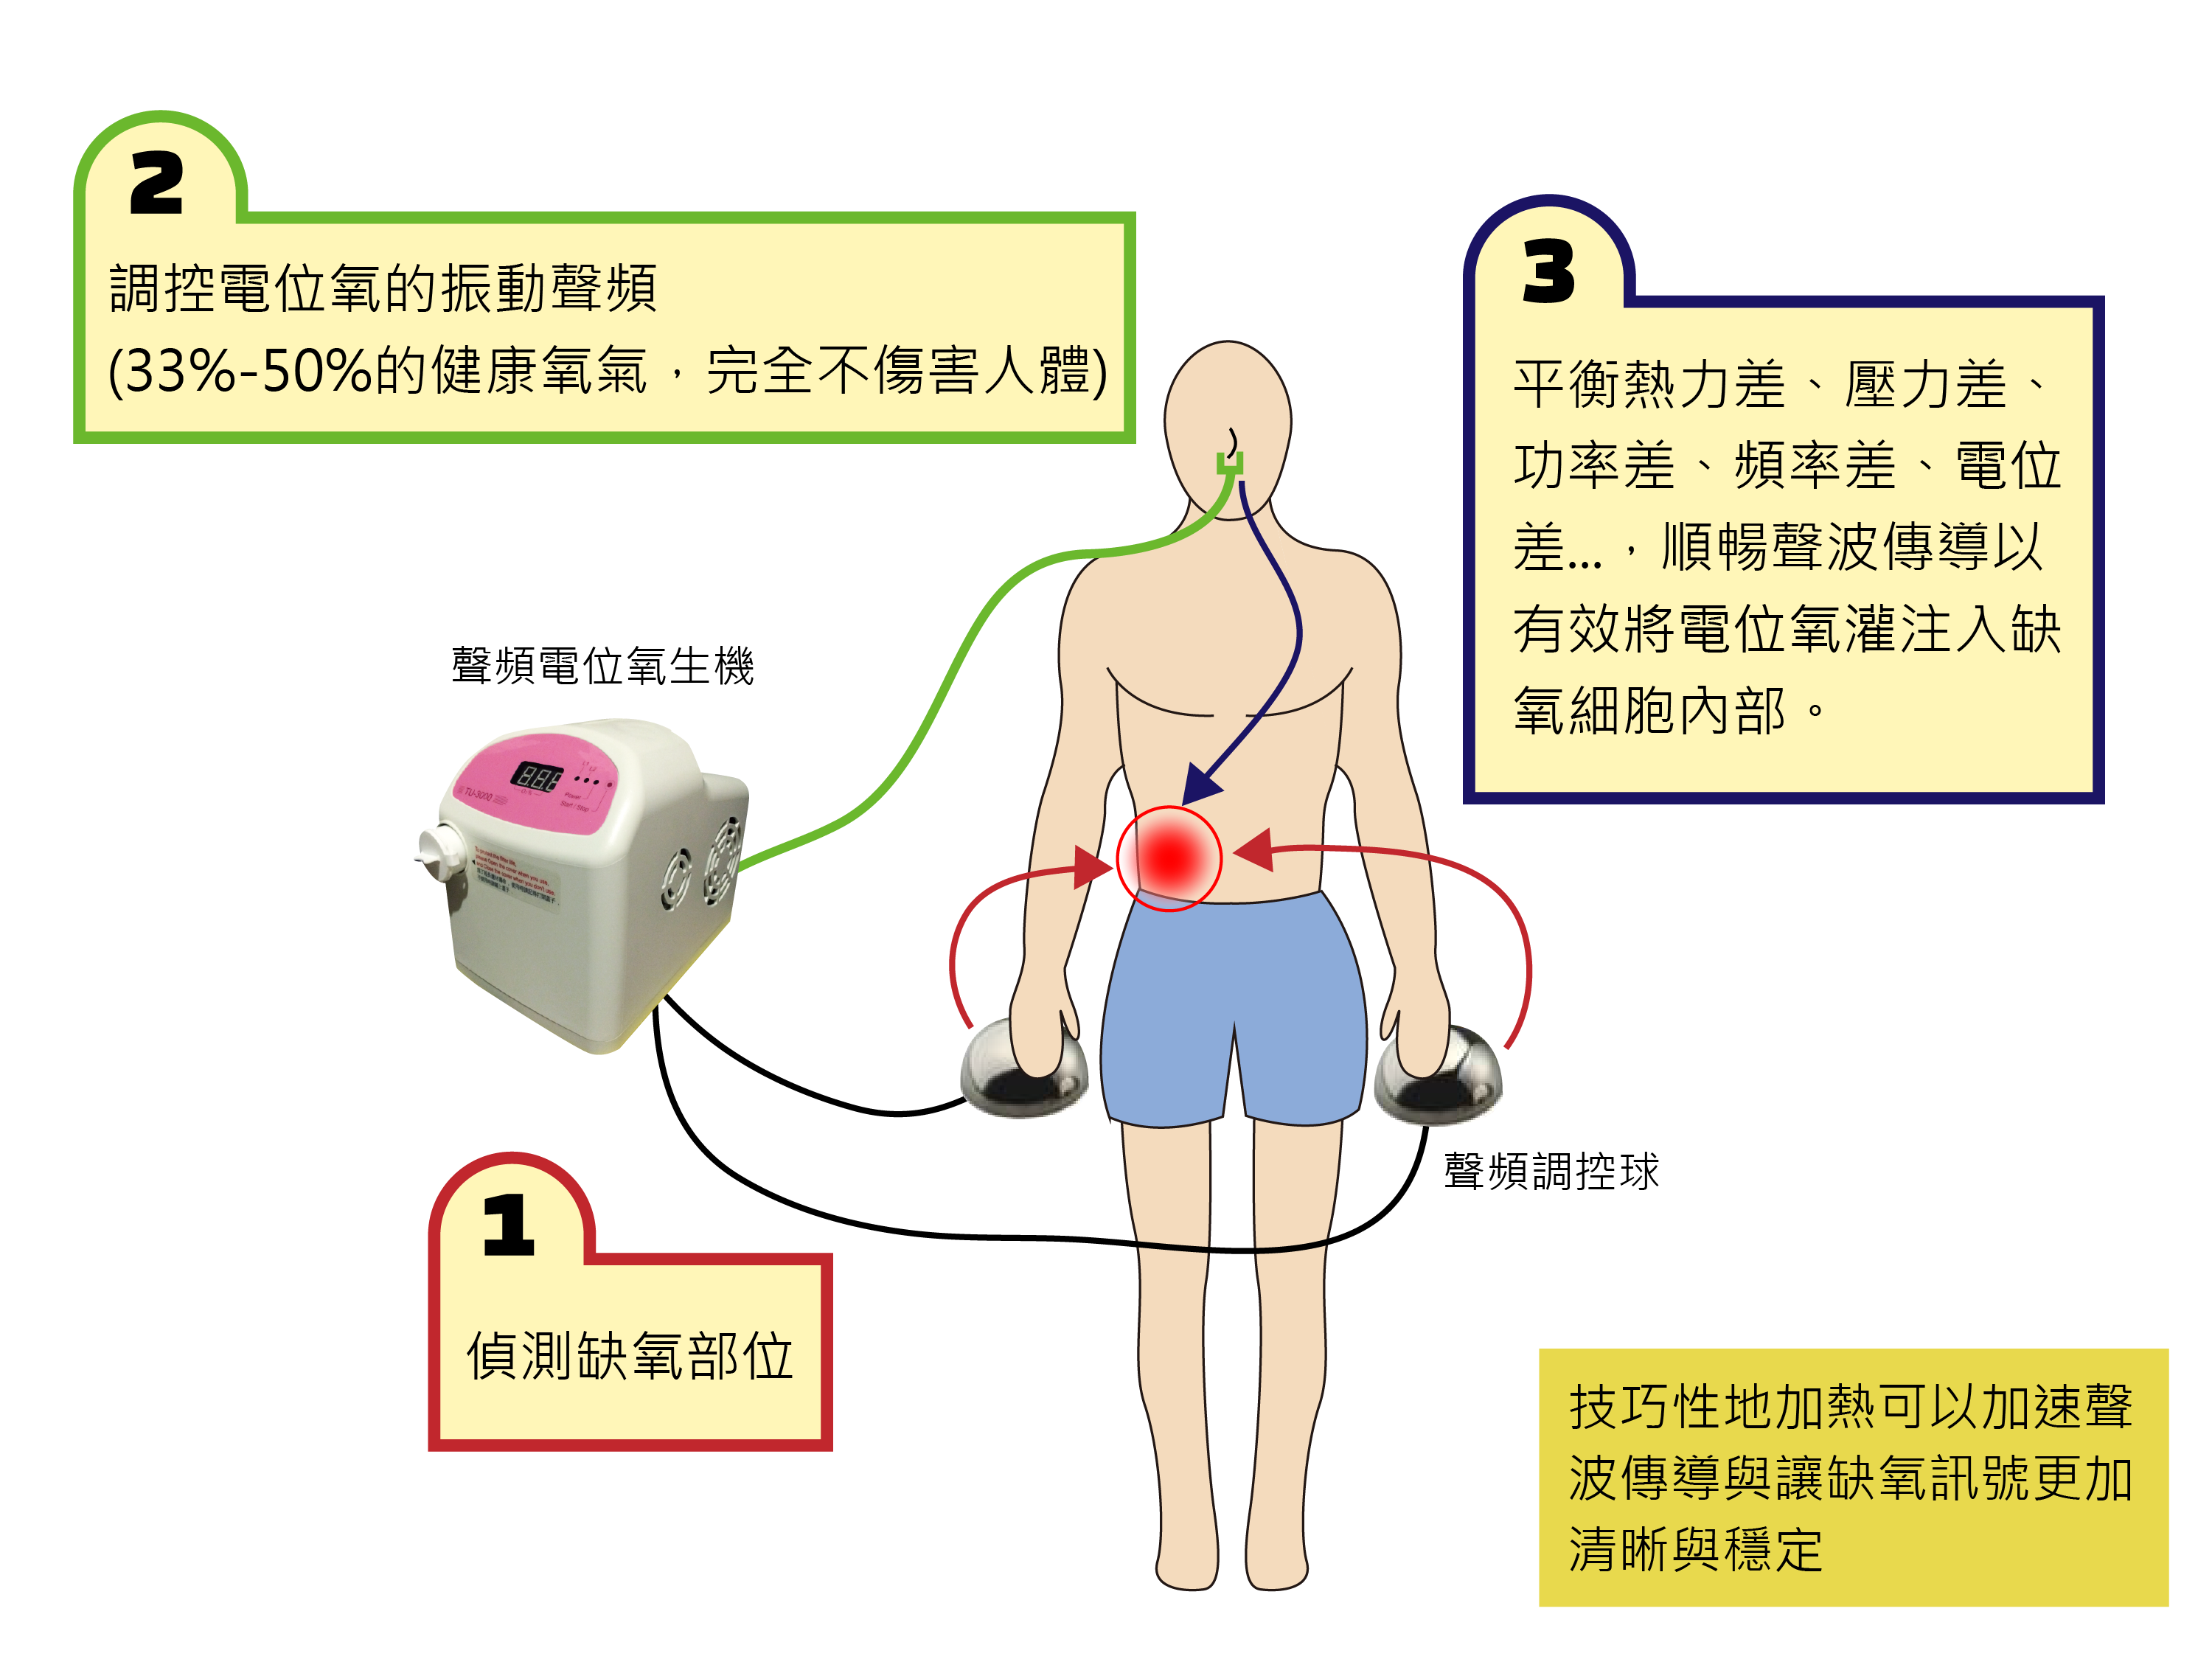 The working principles of TreatU Potential Oxygen System